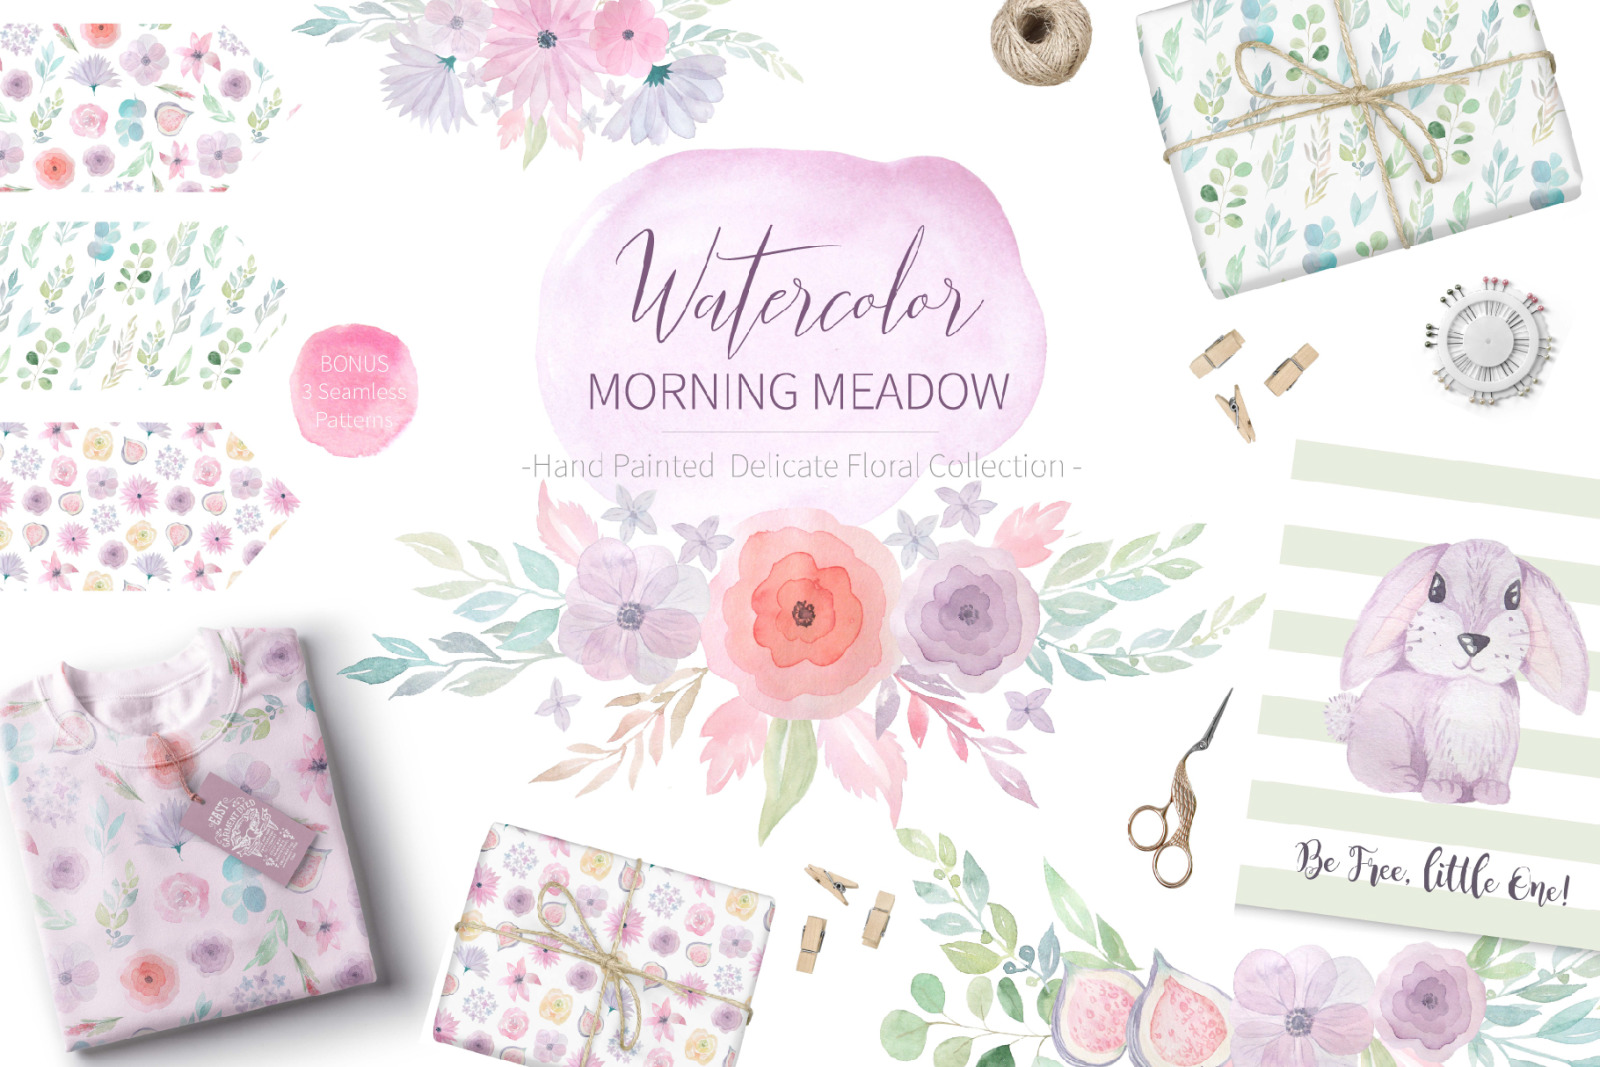 Watercolor Morning Meadow Floral Set